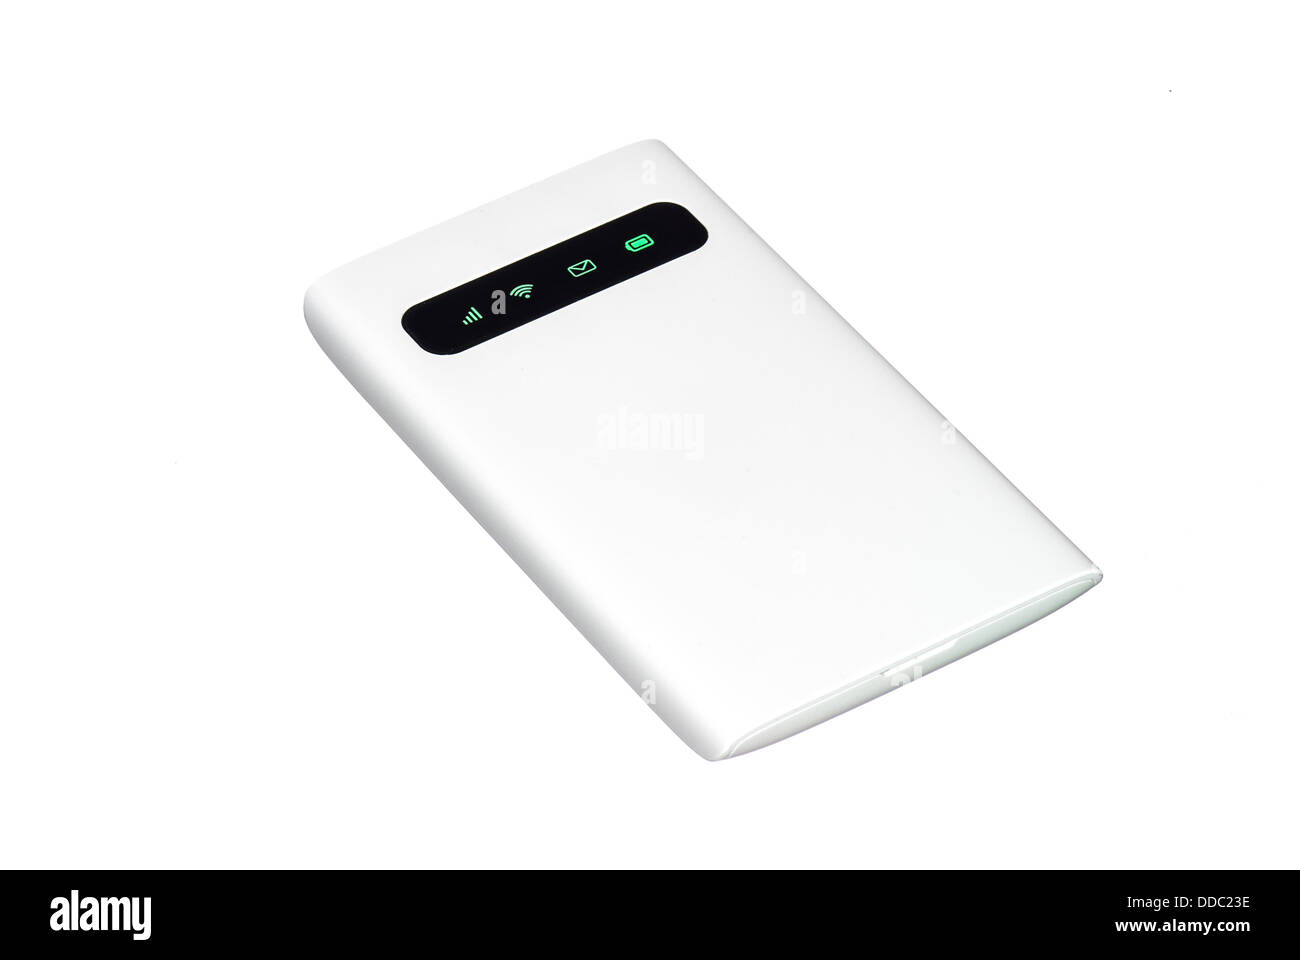 MIFI Router - Stock Image